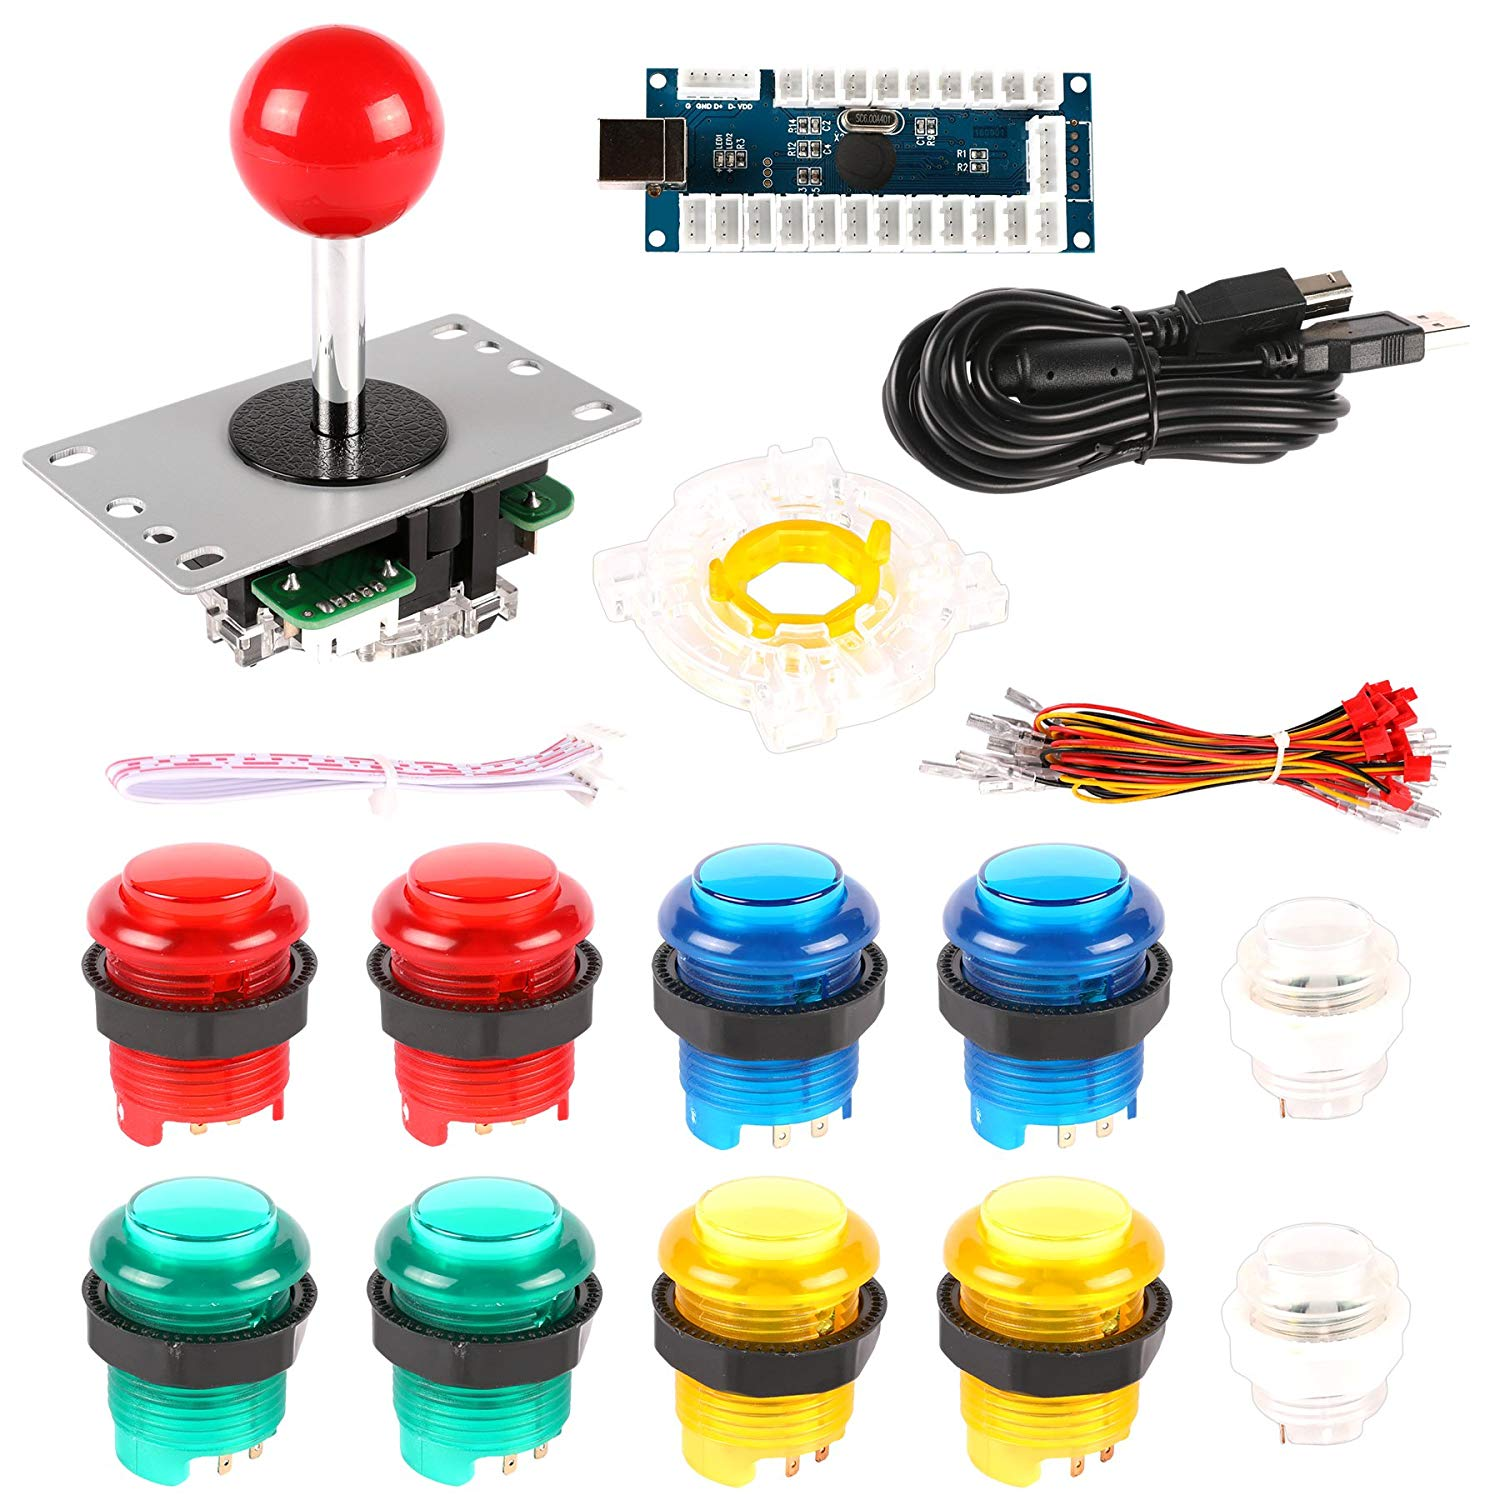 Hikig Arcade Game Controller DIY Kit For USB Joystick DIY, USB MAME Controller DIY and Raspberry Pi 3 Arcade DIY (Zero Delay LED USB Encoder + Joystick + 10x LED Push Button + Octagonal Restrictor)